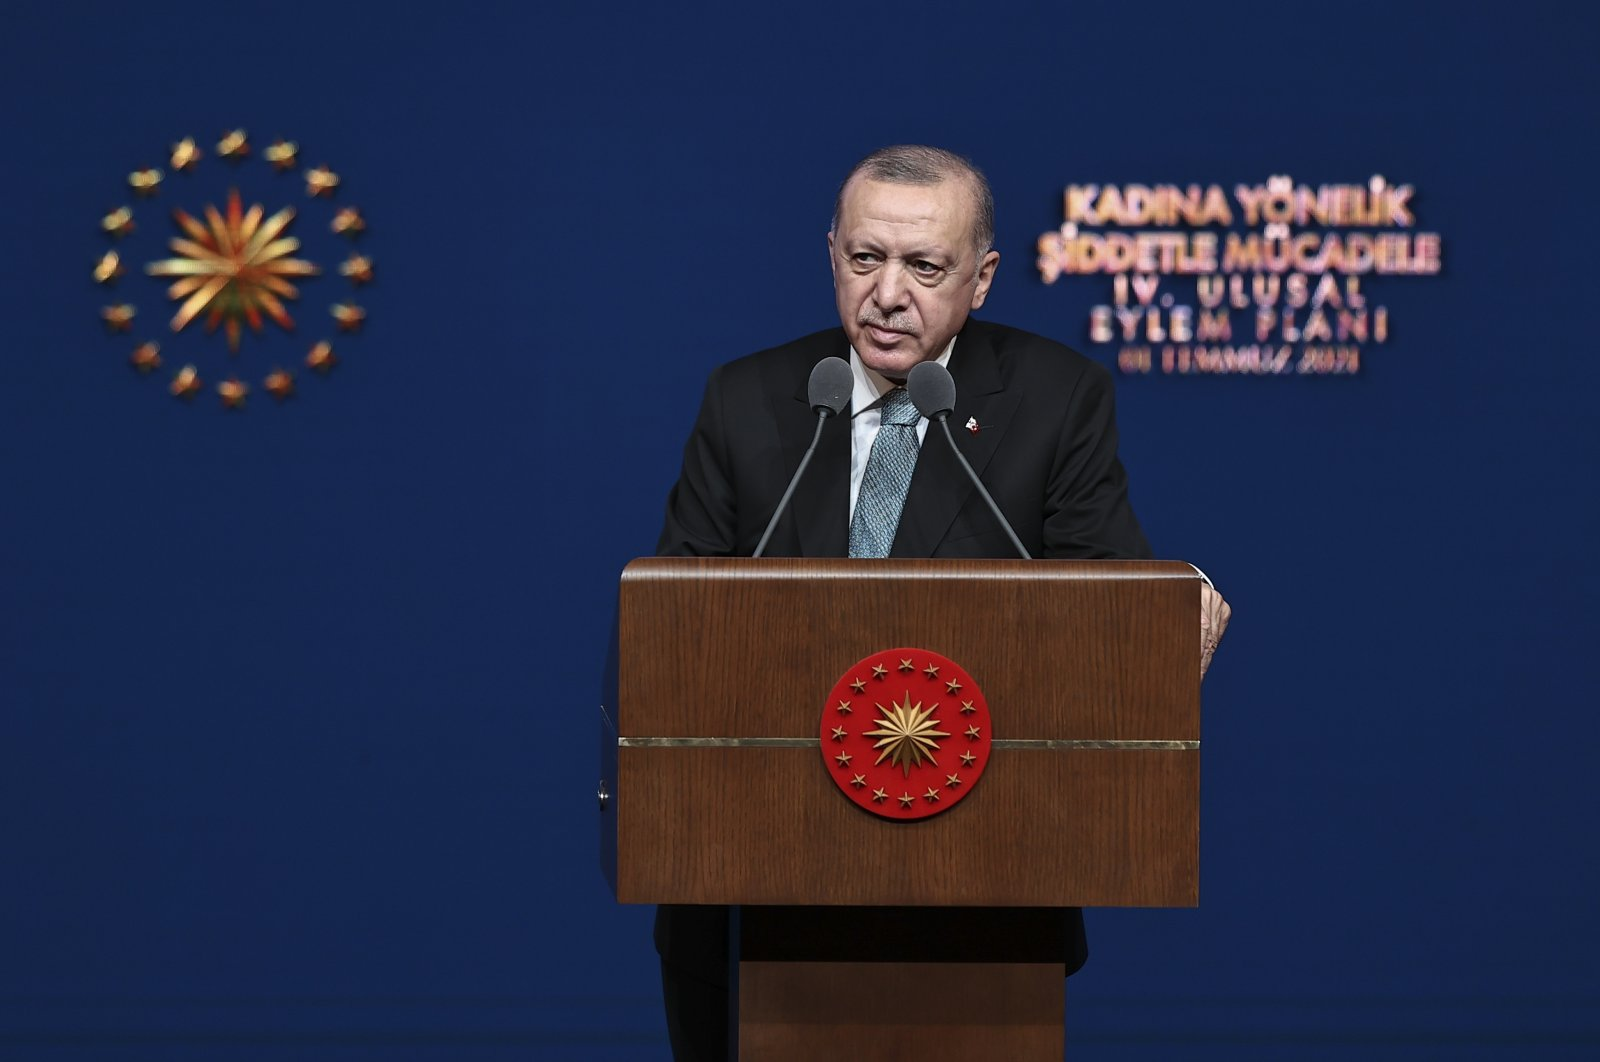 President Recep Tayyip Erdoğan speaks at the launch of the plan at the Presidential Complex, in the capital Ankara, Turkey, July 1, 2021. (AA PHOTO)